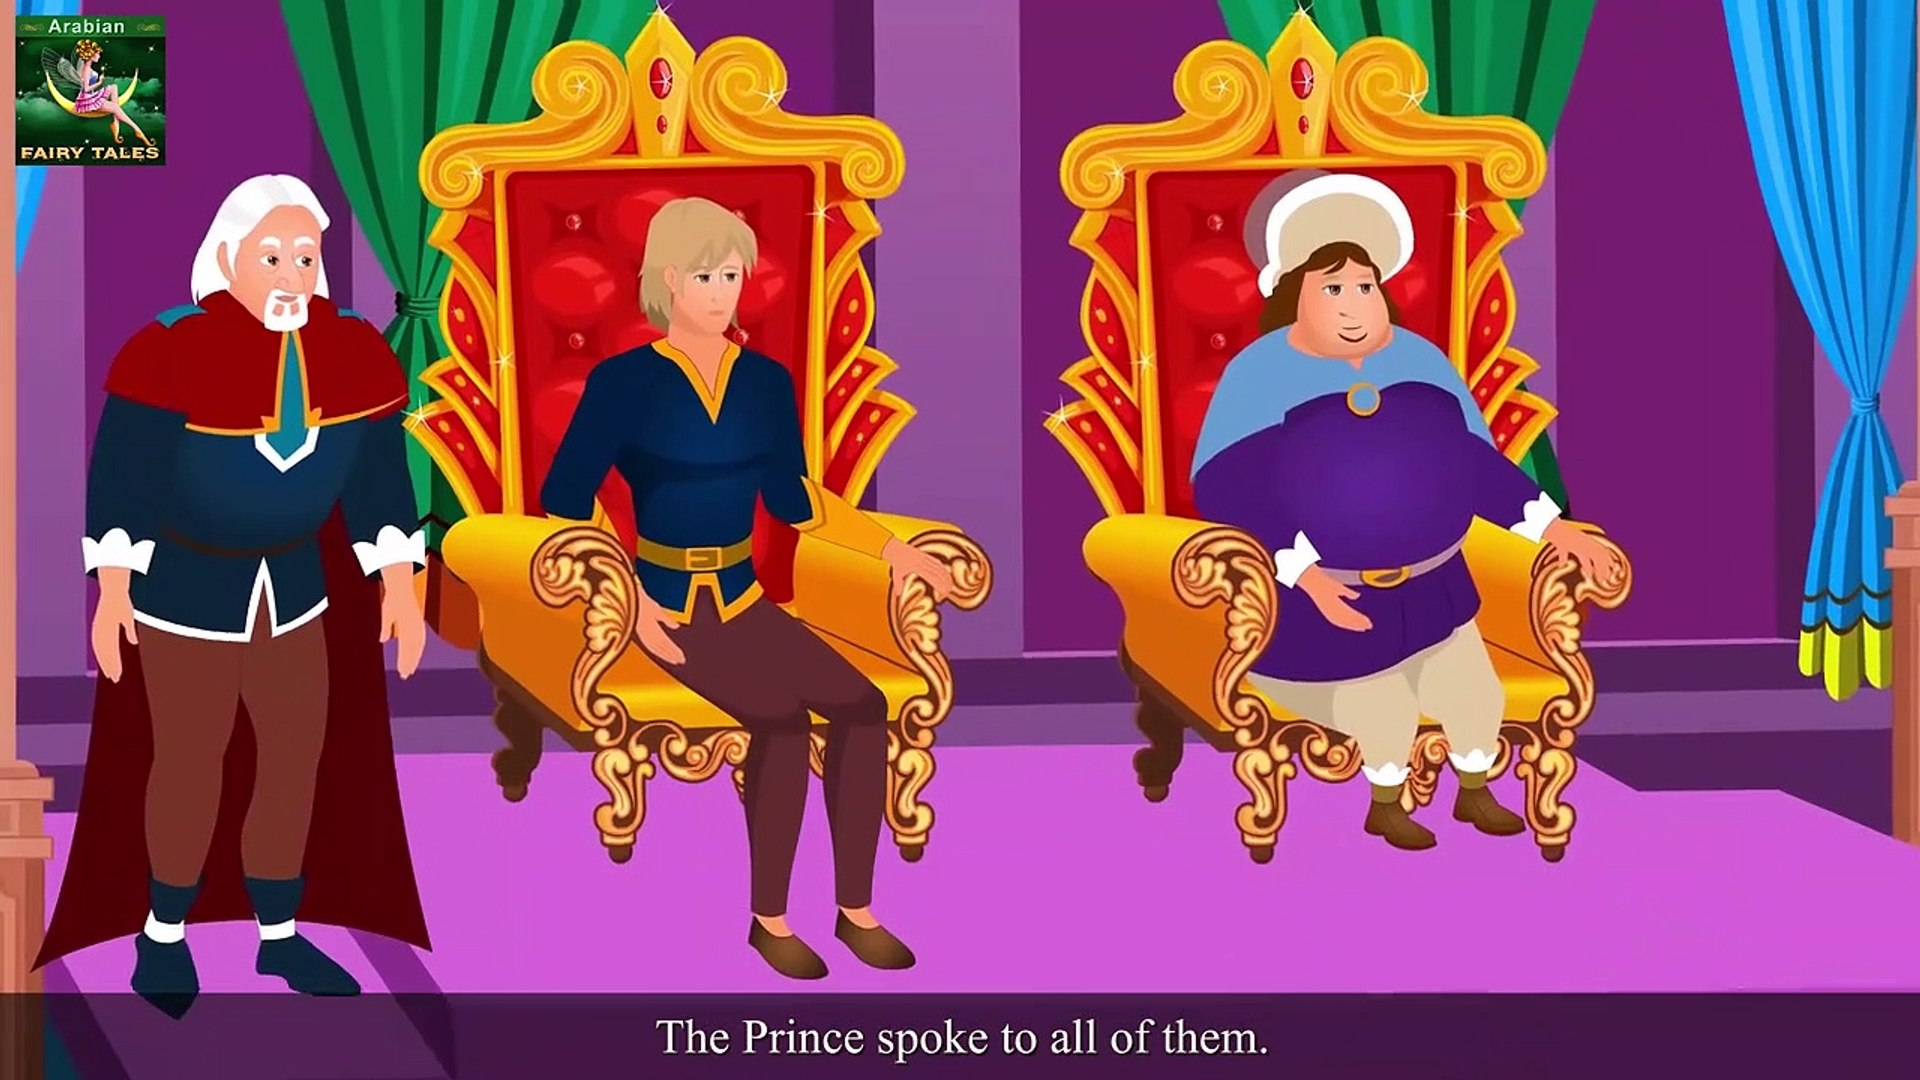 Prince and the Honest Girl Story in Arabic - Arabain Fairy Tales